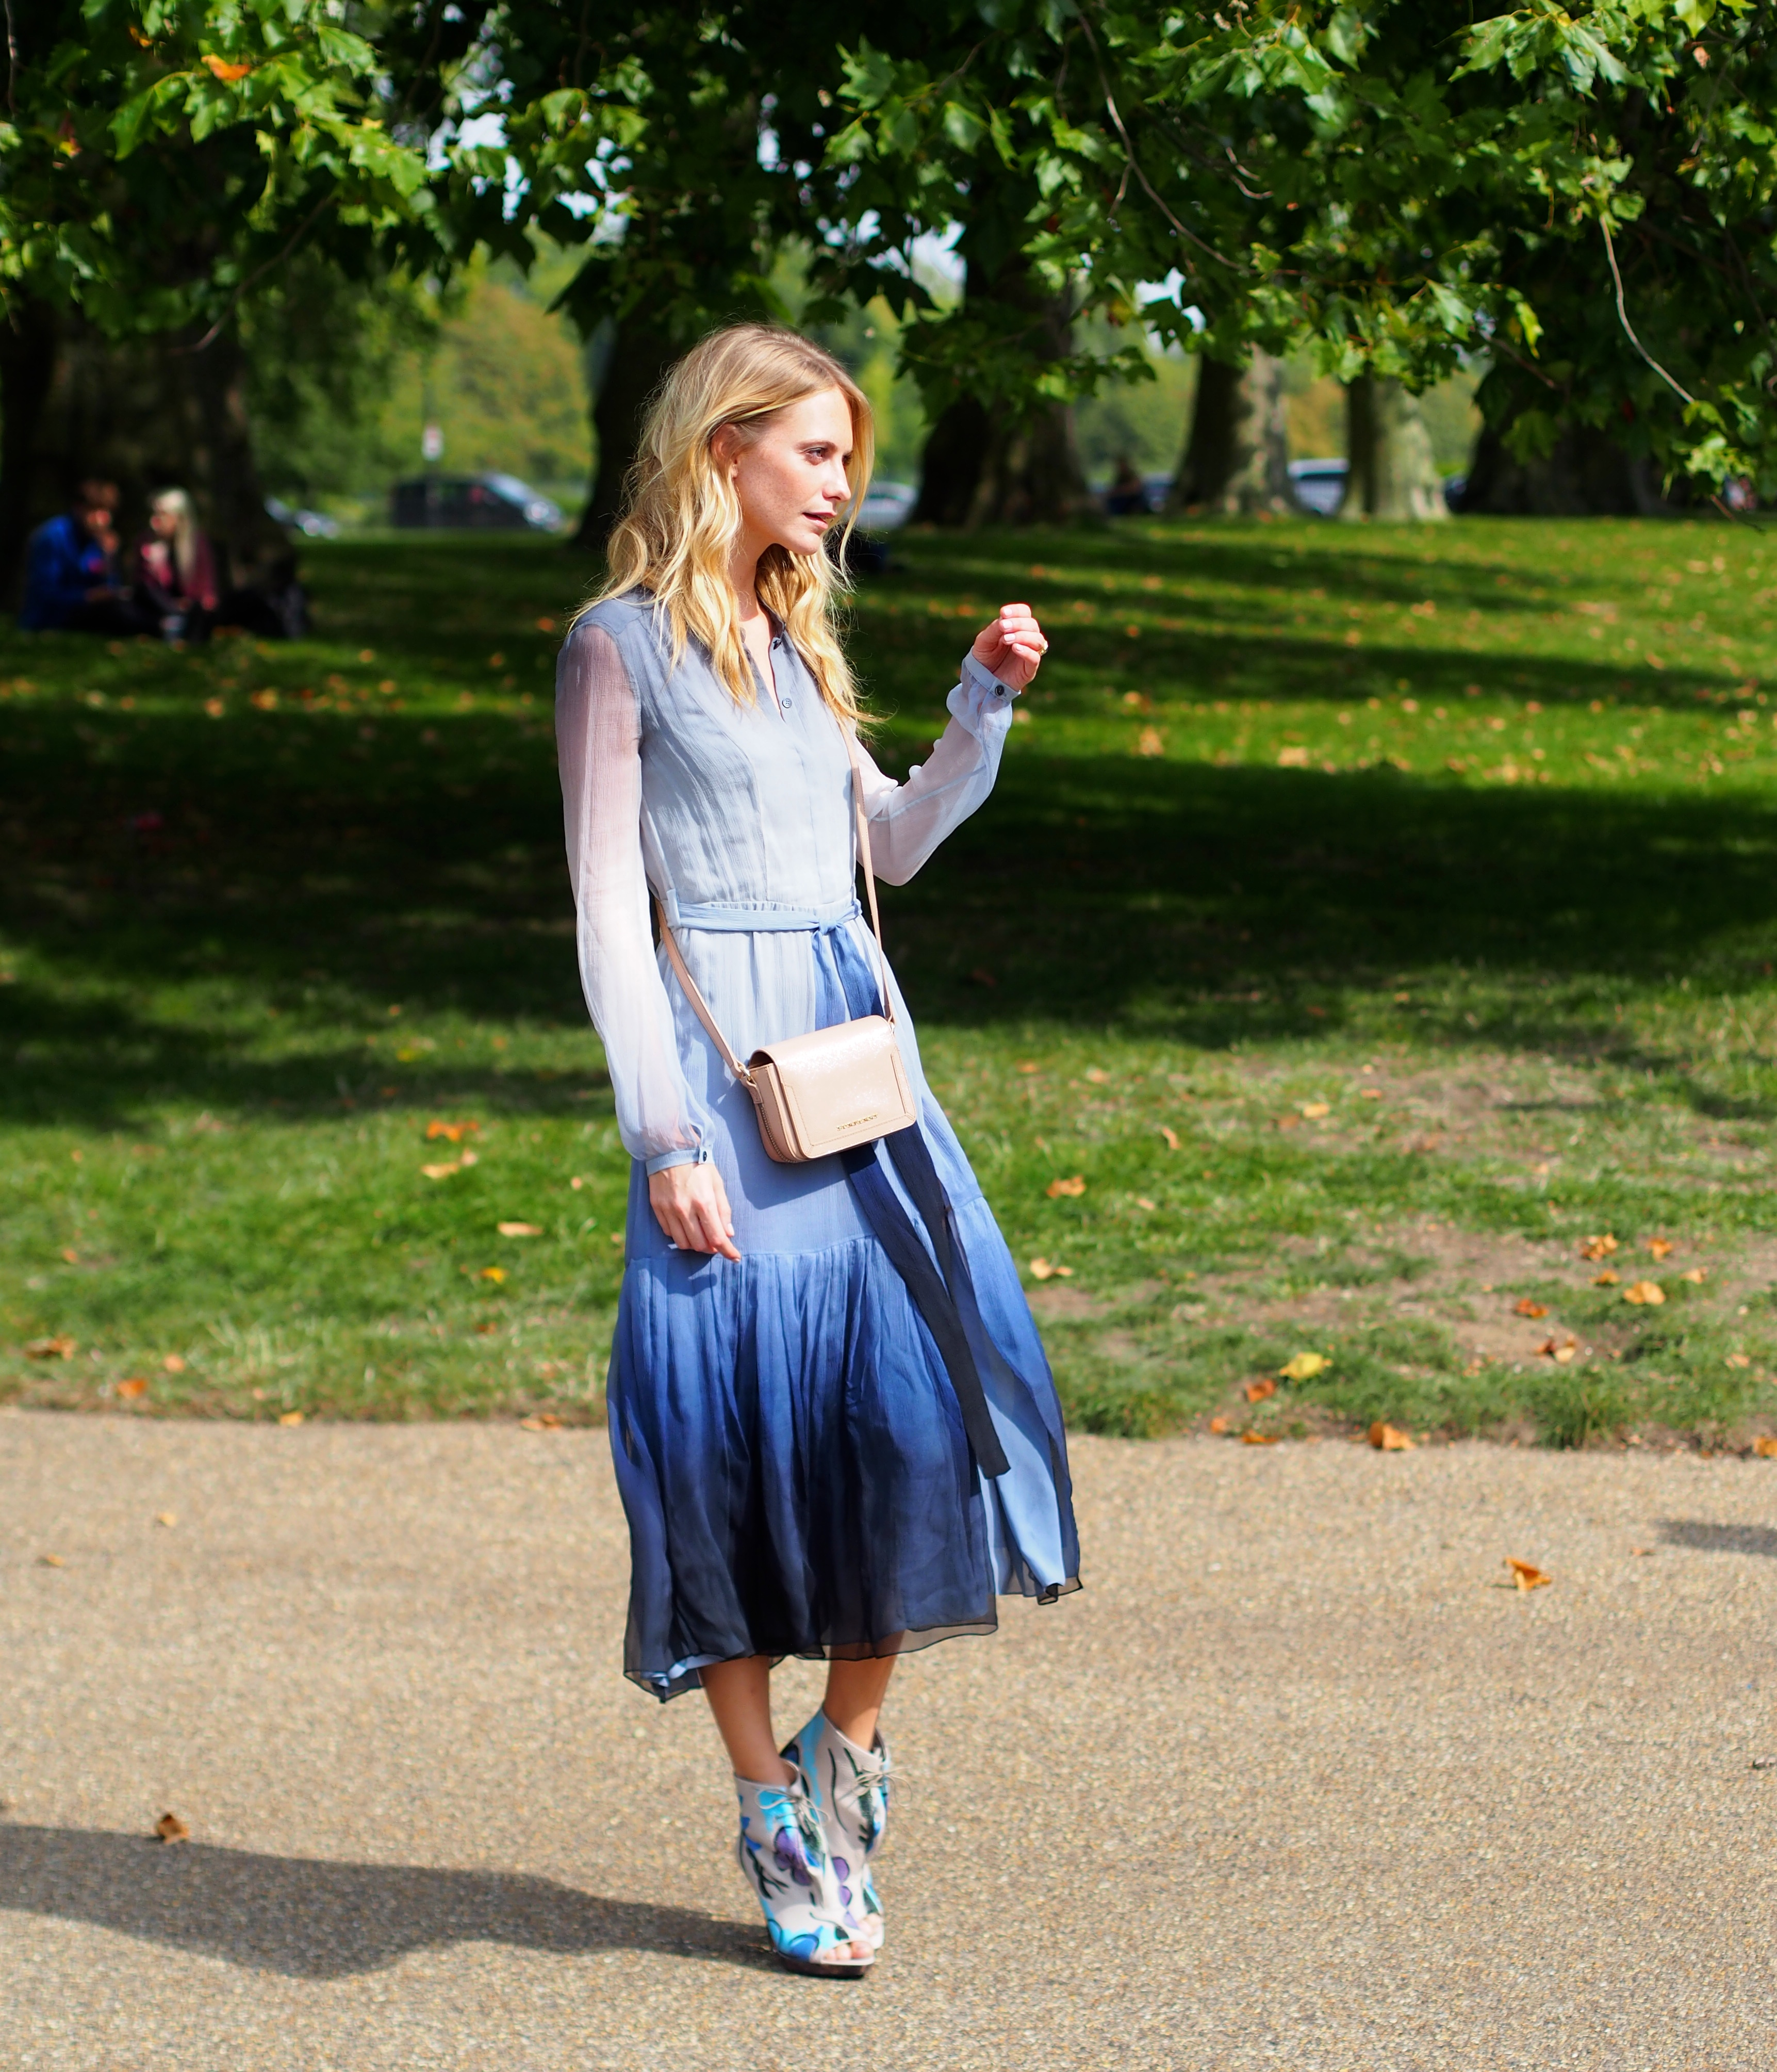 Poppy Delevingne London Fashionweek Streetstyle after Burberry